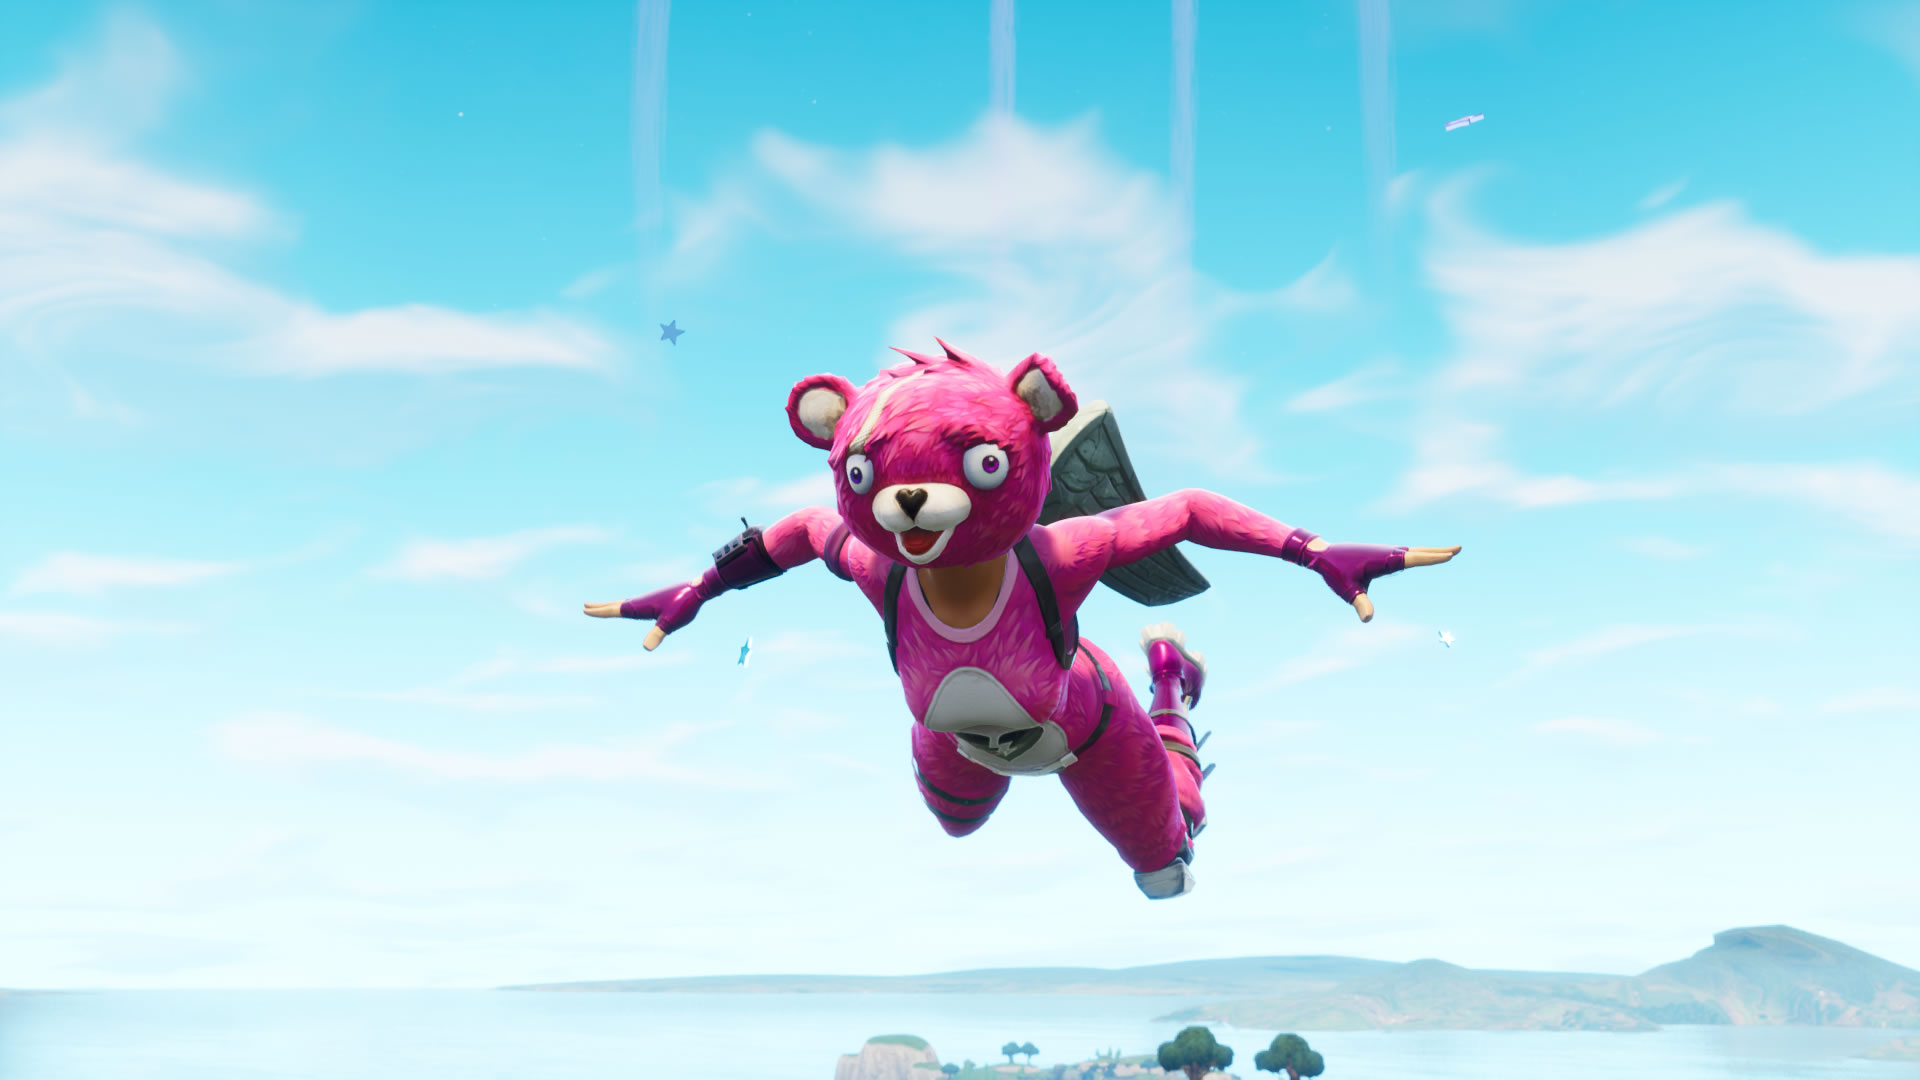 download wallpaper: Fortnite Cuddle Leader wallpaper